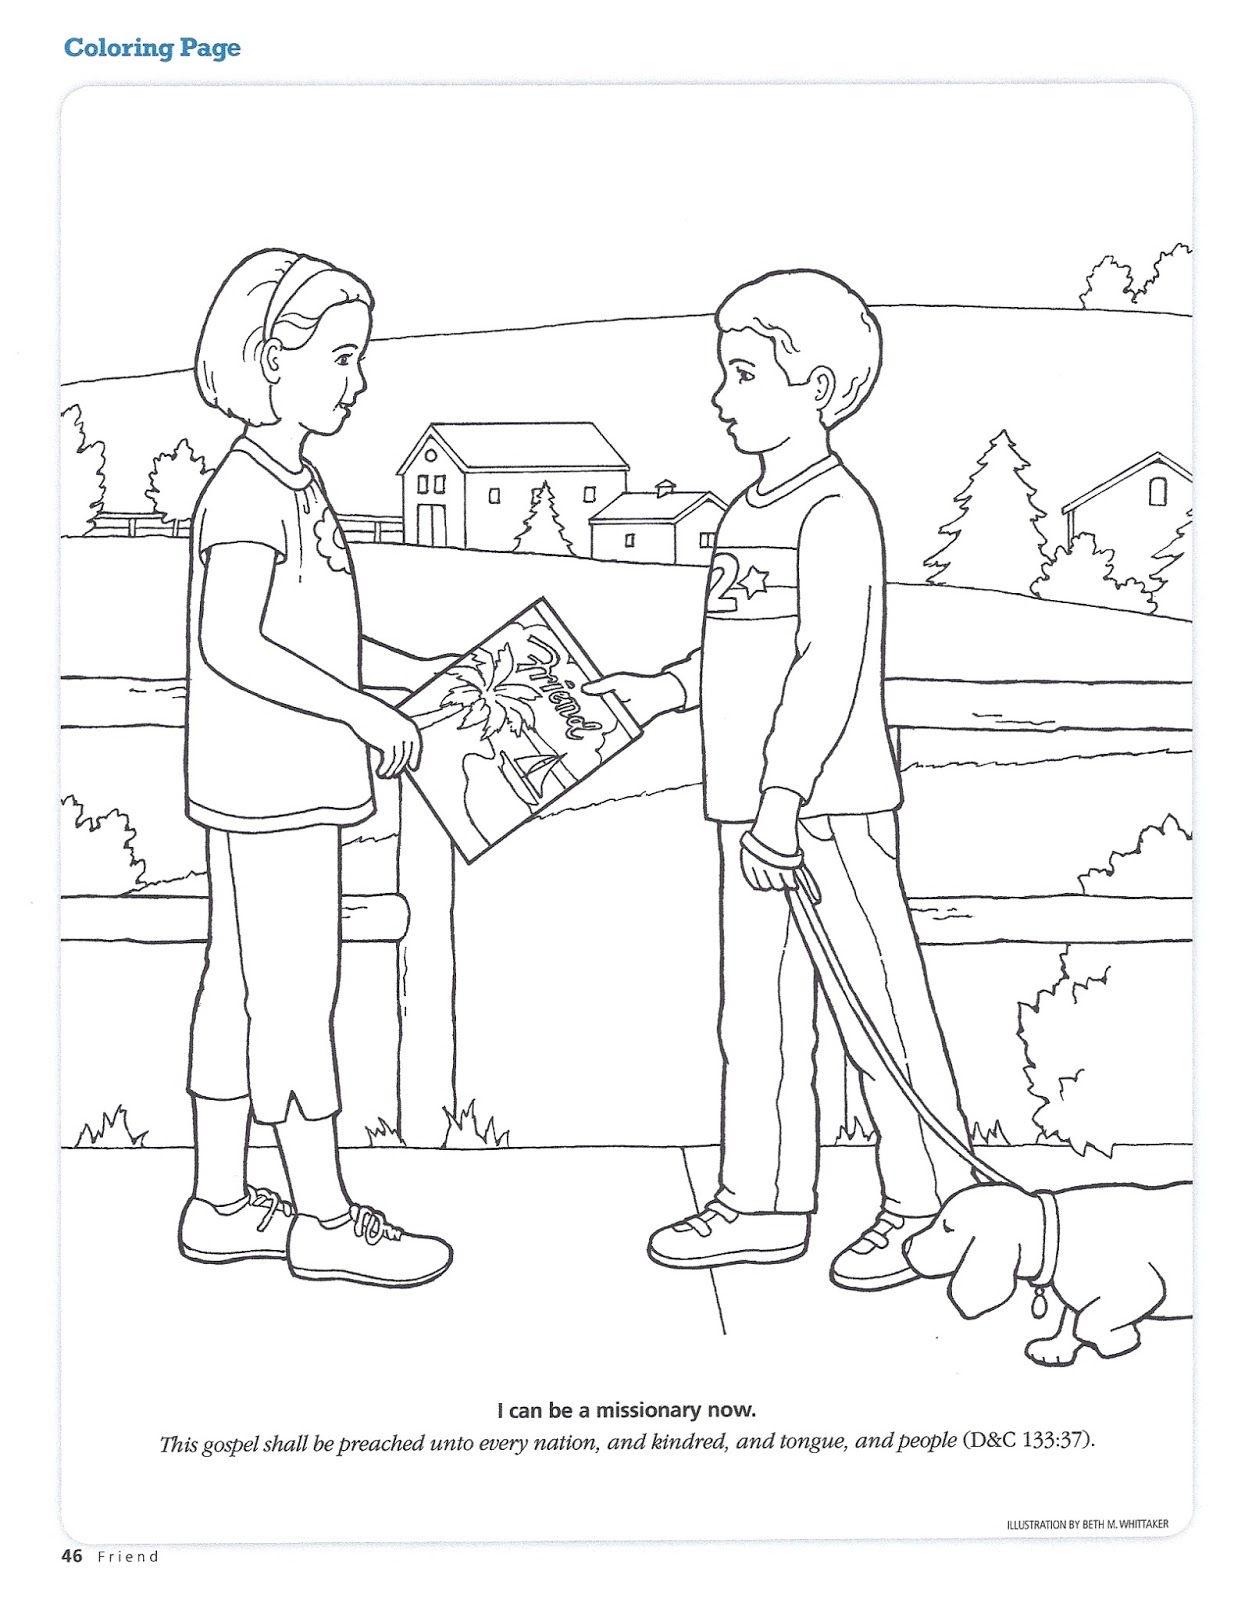 Coloring pages of missionary